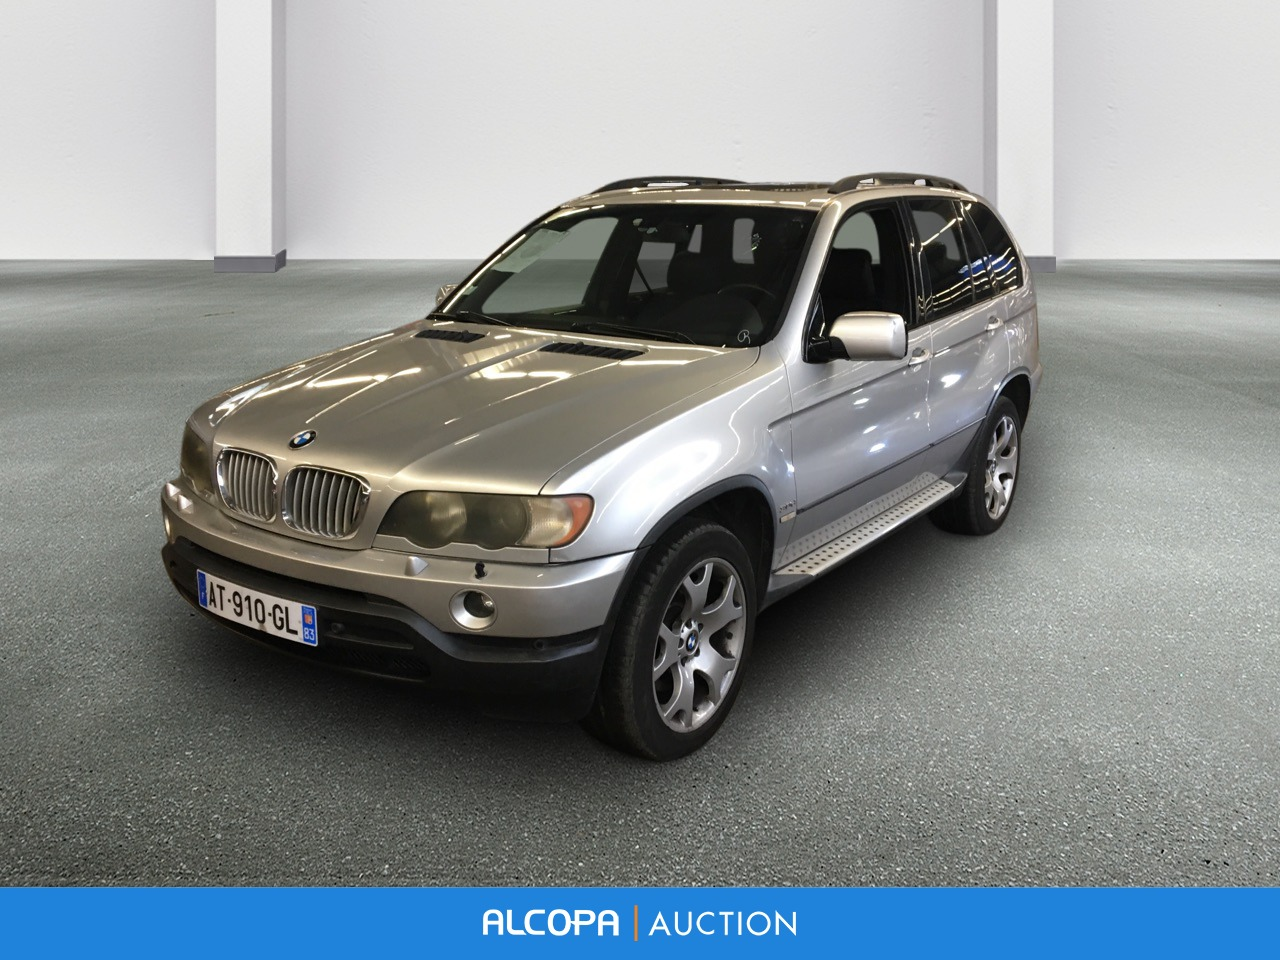 bmw x5 x5 3 0d a alcopa auction. Black Bedroom Furniture Sets. Home Design Ideas